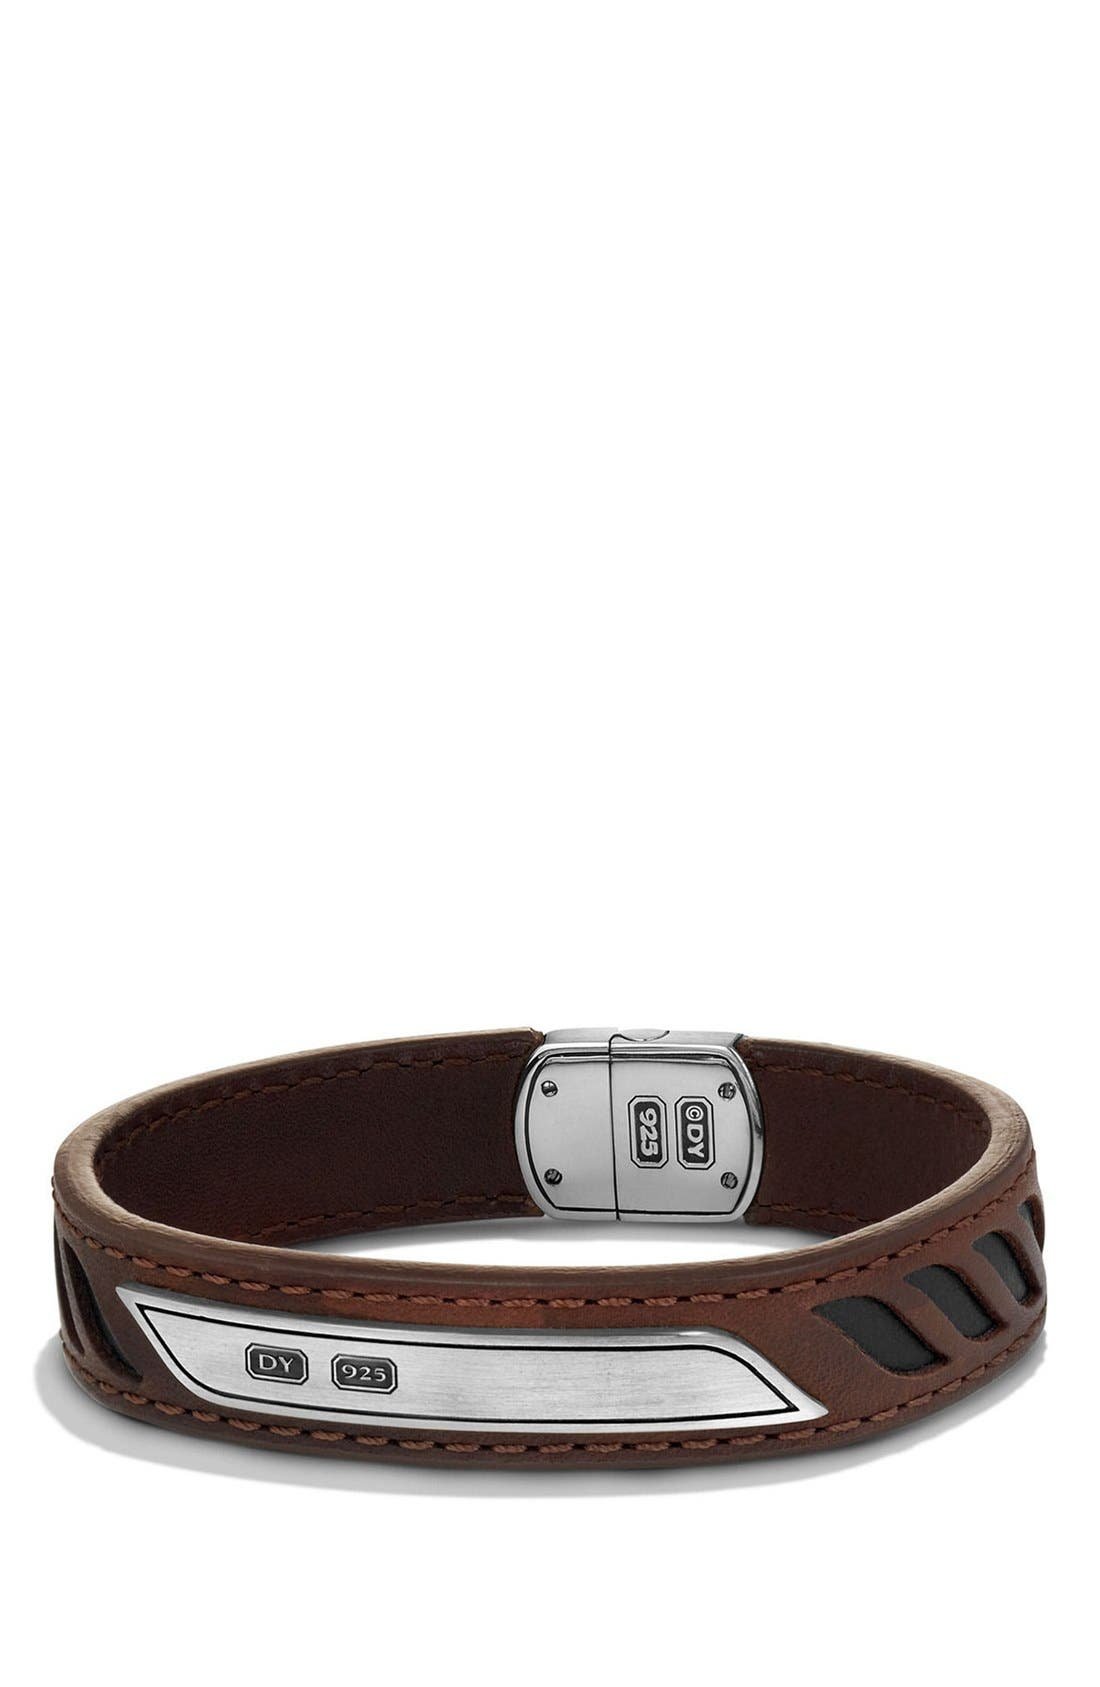 'Graphic Cable' Leather ID Bracelet,                             Main thumbnail 1, color,                             Silver/ Brown